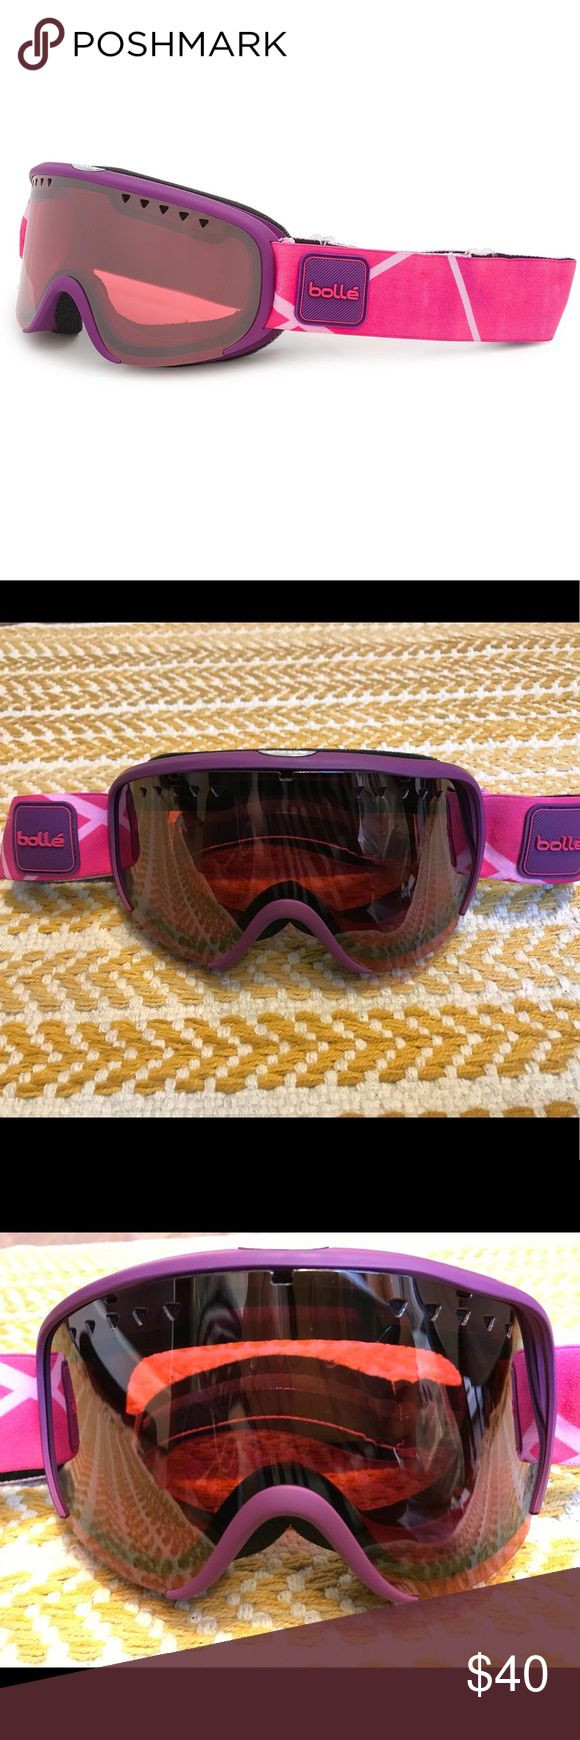 ❄️ NWOT BOLLE Scarlett Ski Goggle Pink Purple NWOT!!  P80+ layer for anti-fog properties Cargo-Glas outer lenses feature protective armor for scratch resistance Flow-Tech venting promotes directional airflow to prevent moisture buildup Triple or double density foam Double lens eliminates condensation Silicone strap supports goggles on your helmet 2 very light scratches on lense, not noticeable. bolle Accessories Glasses